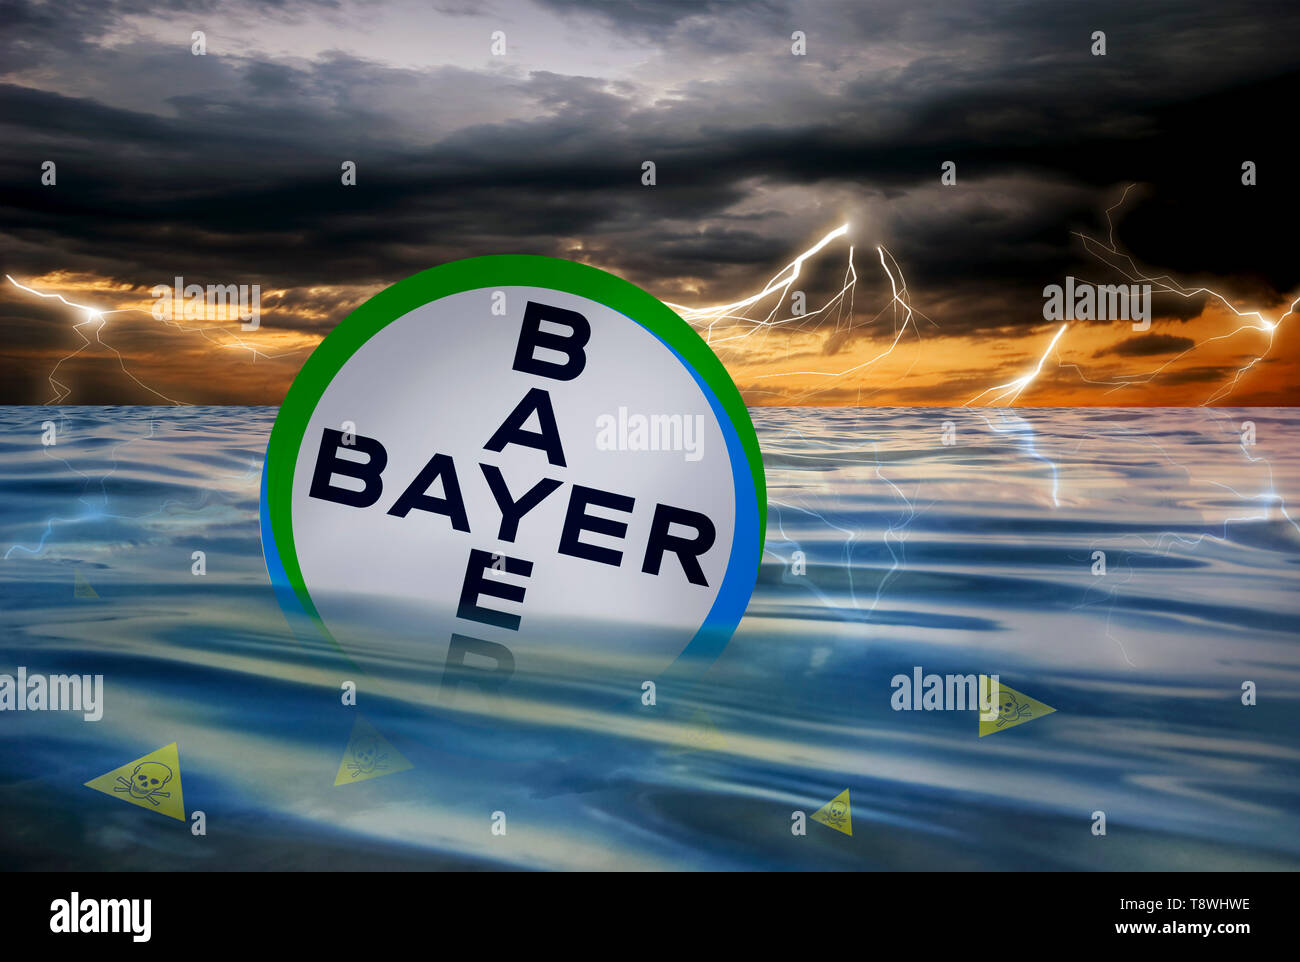 Crisis of the German company Bayer AG after the acquisition of the glyphosate producer Monsanto - Stock Image